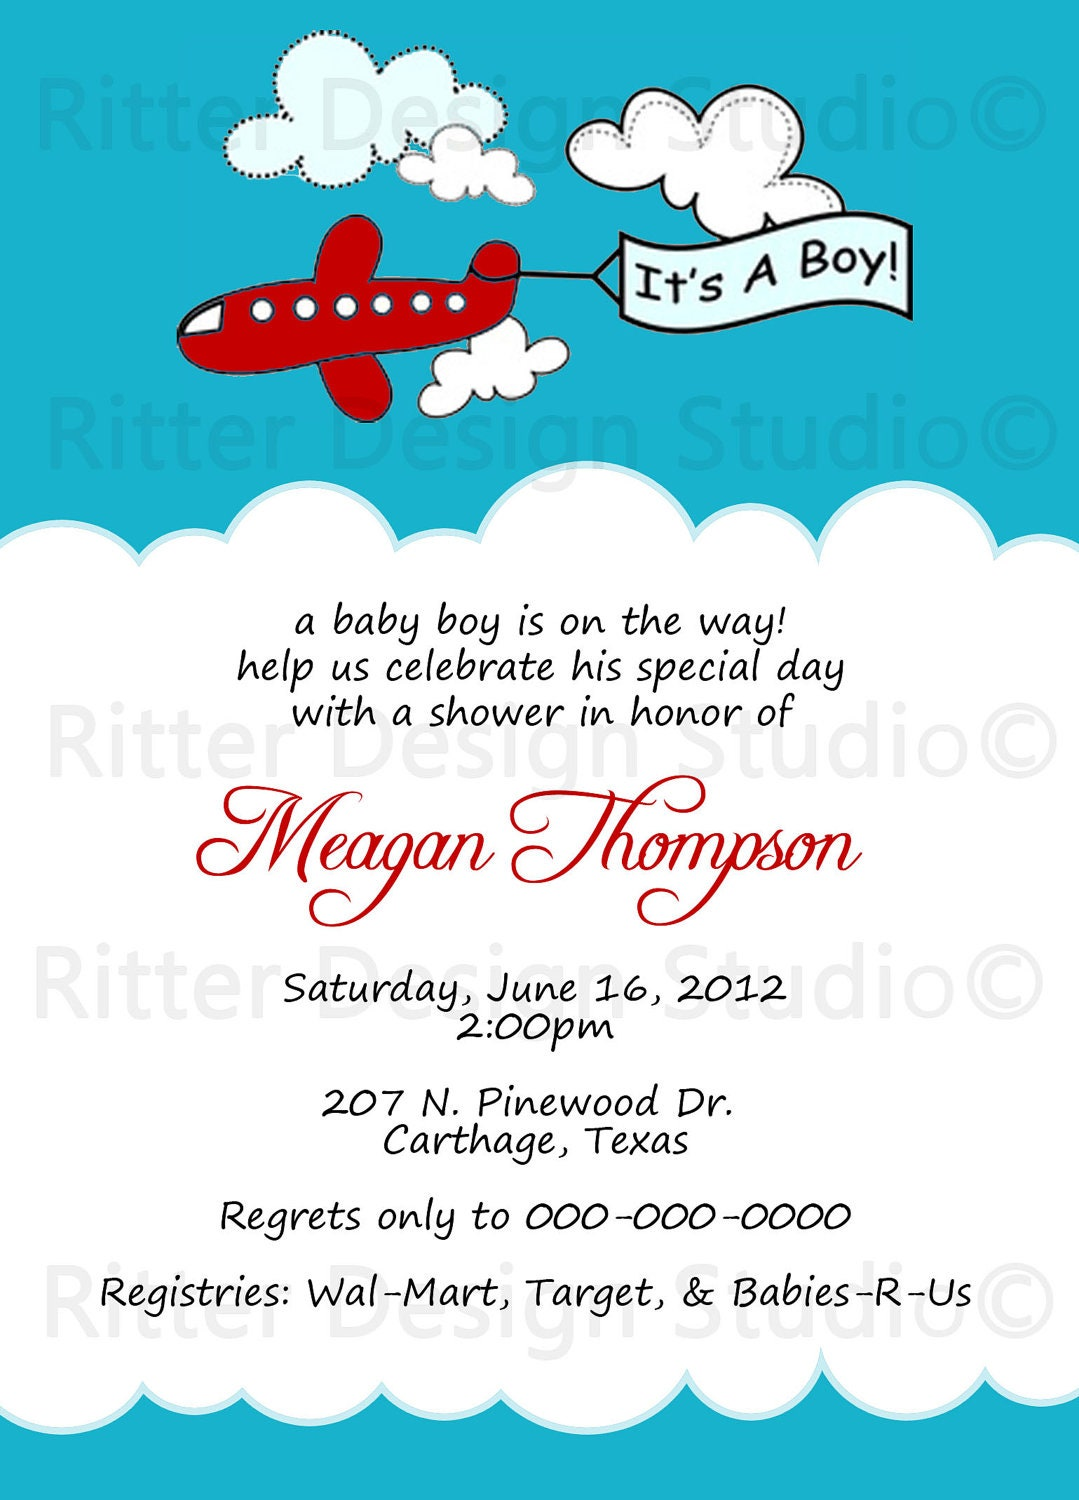 Baby Boy Shower Invitations Wording as great invitations ideas